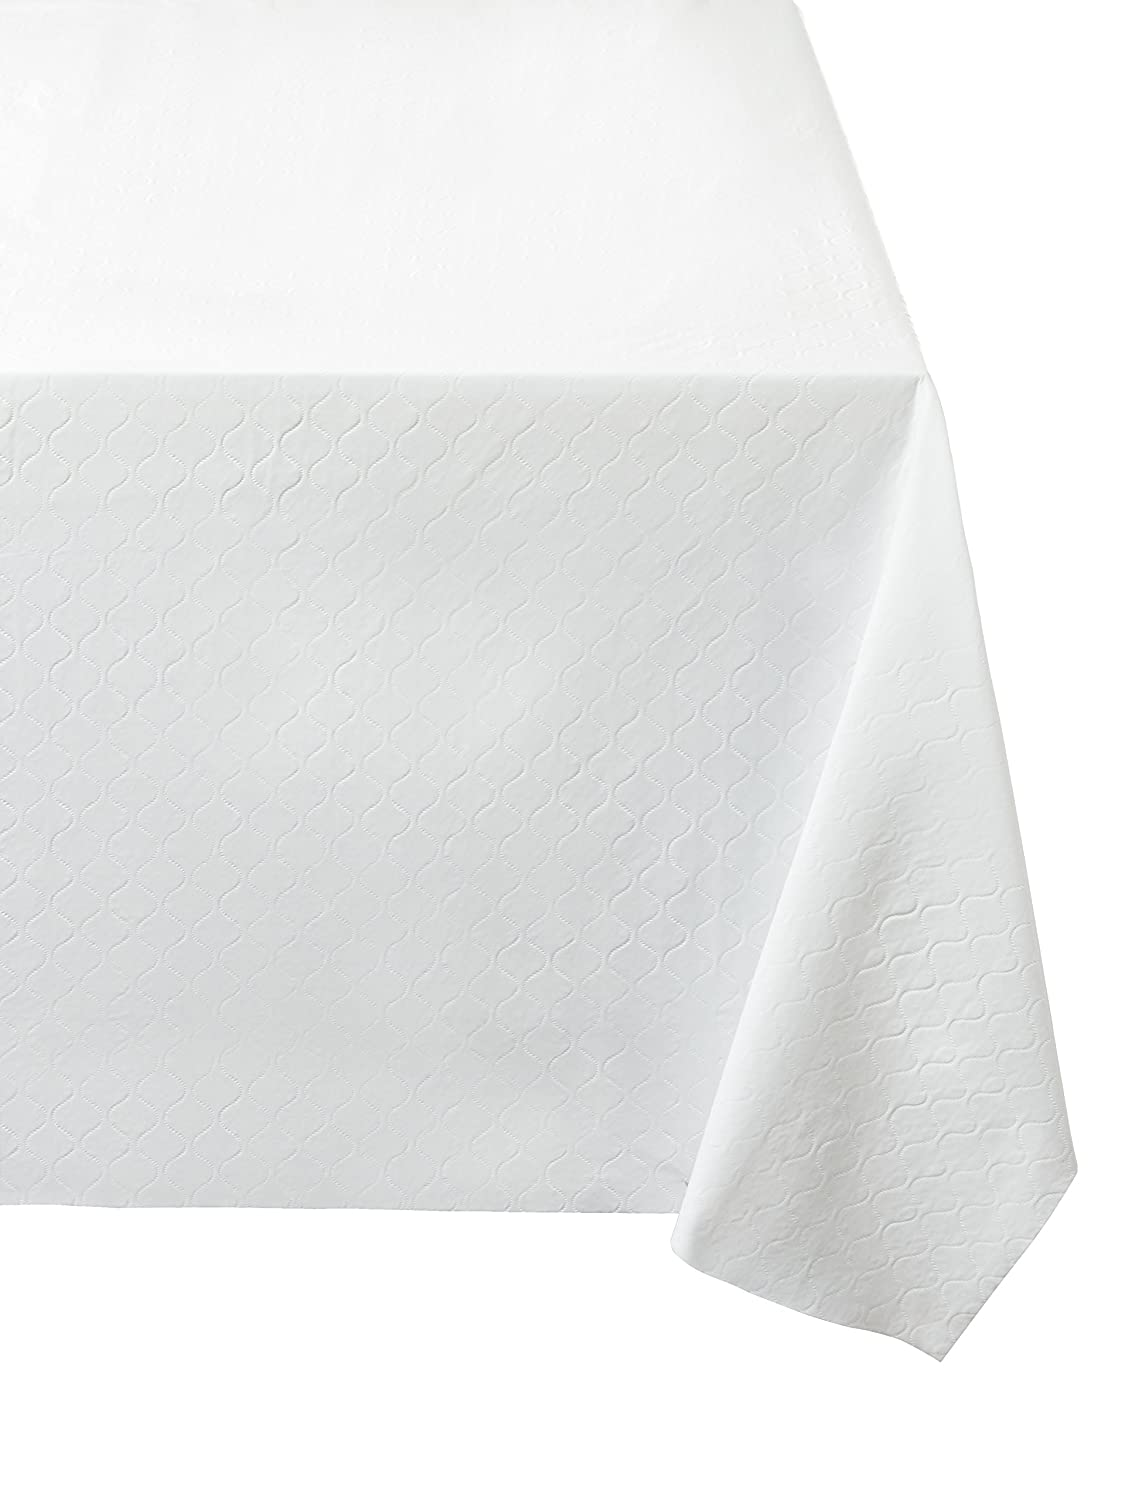 Violet Linen Deluxe Quilted Fiber Backing Table Pad, 52